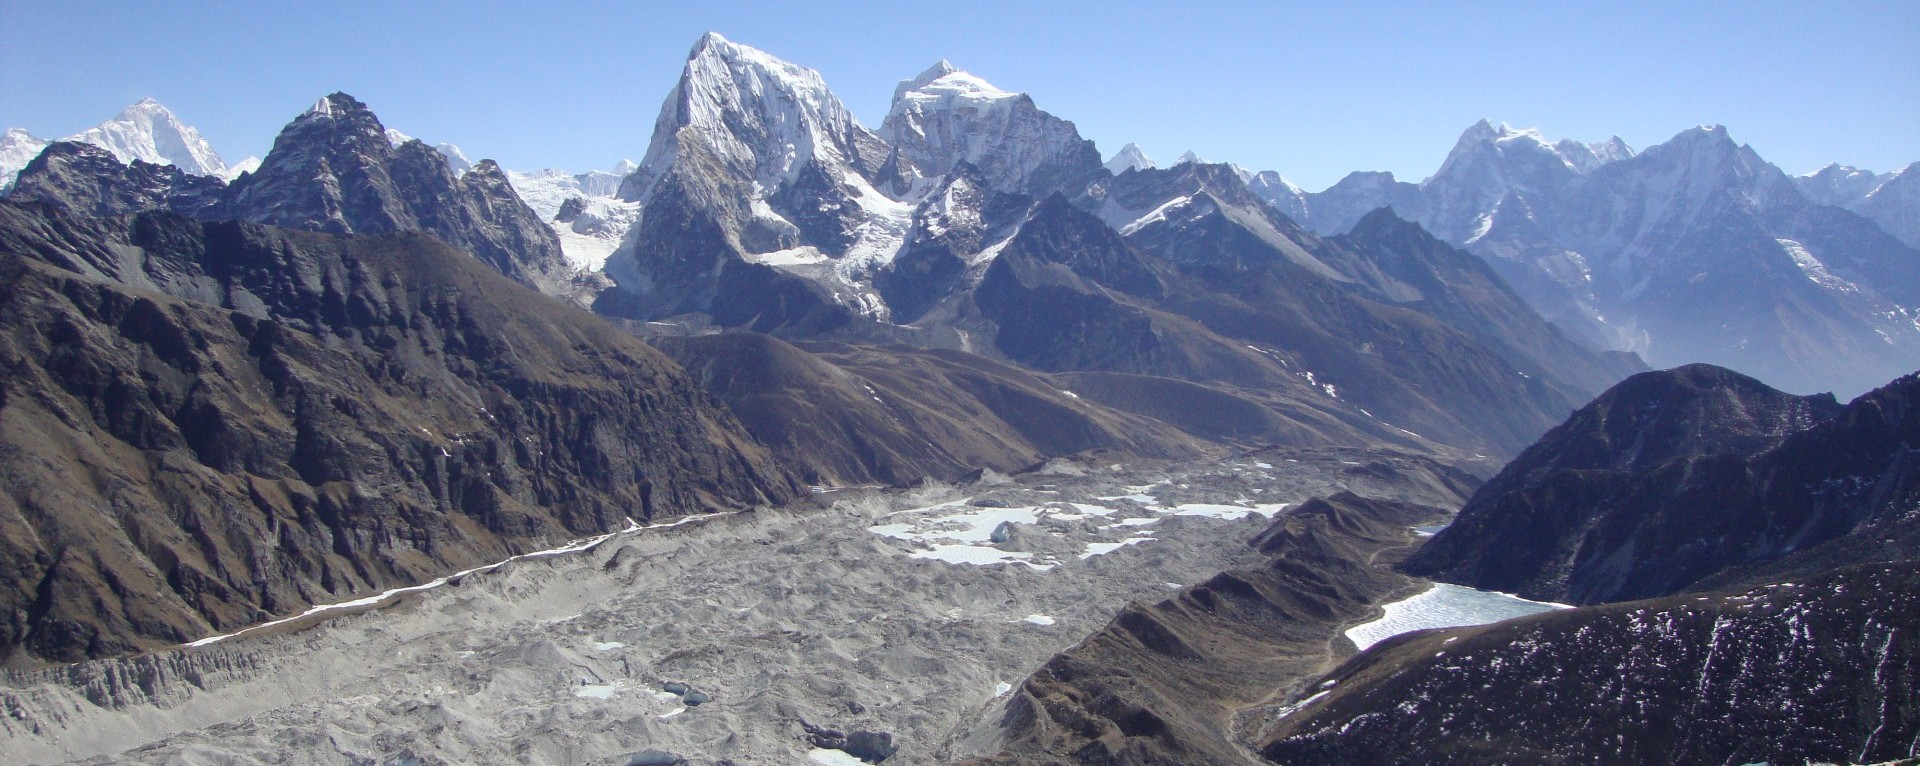 Everest Base camp at the altitude of 5364m.